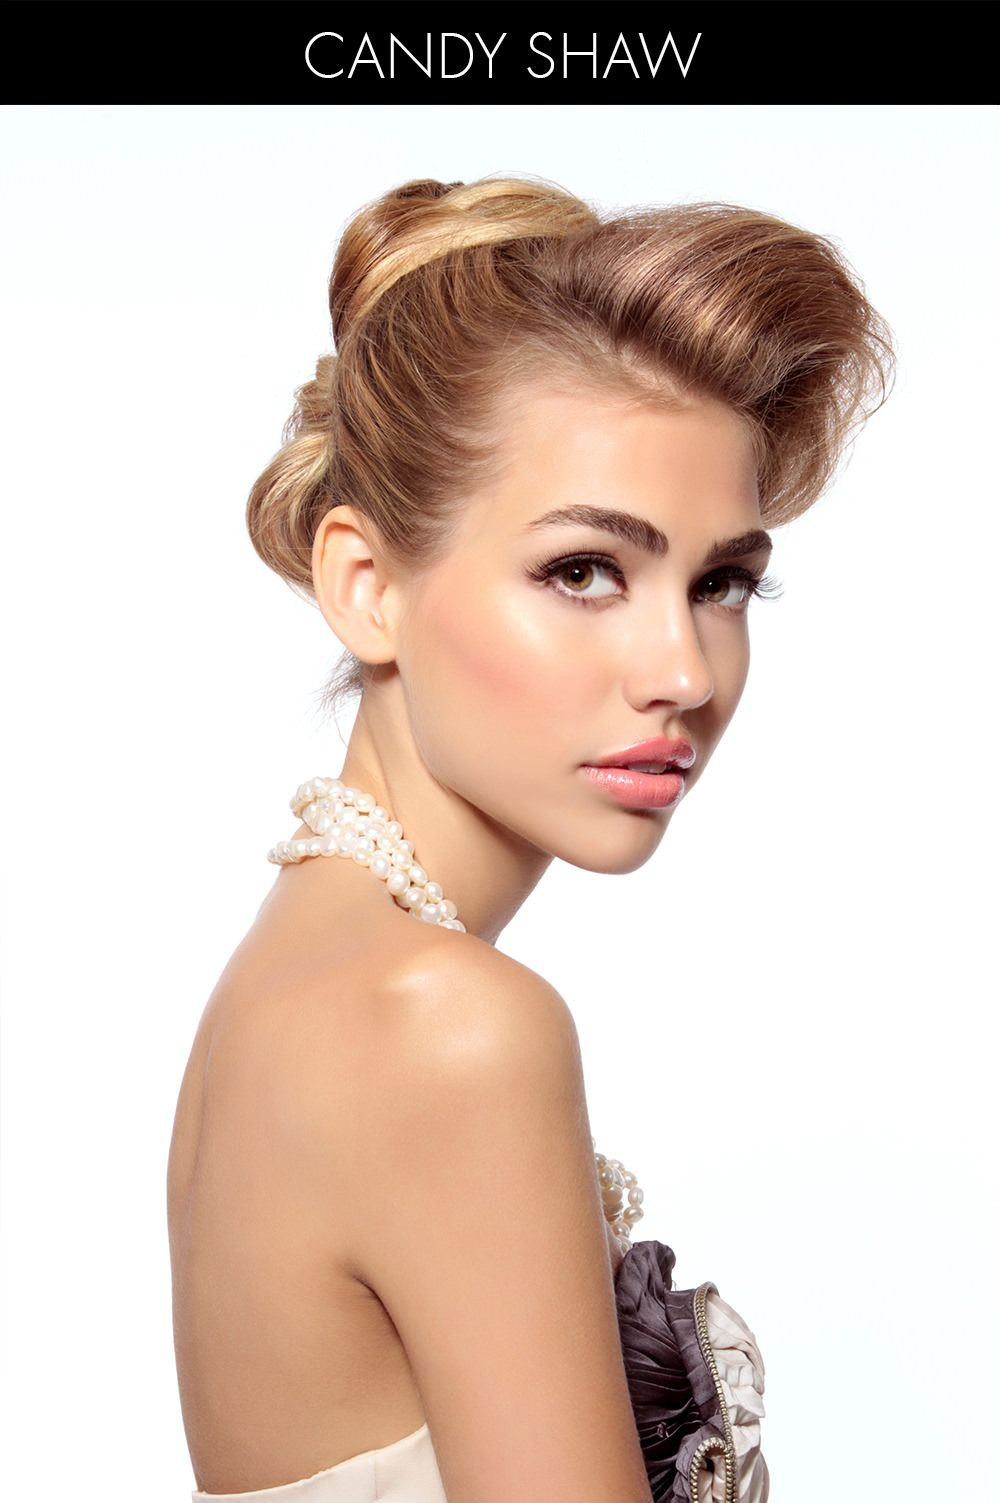 30 Hot Summer Hairstyles On the Radar for 2016   Hot hair styles, Hair styles, Summer hairstyles